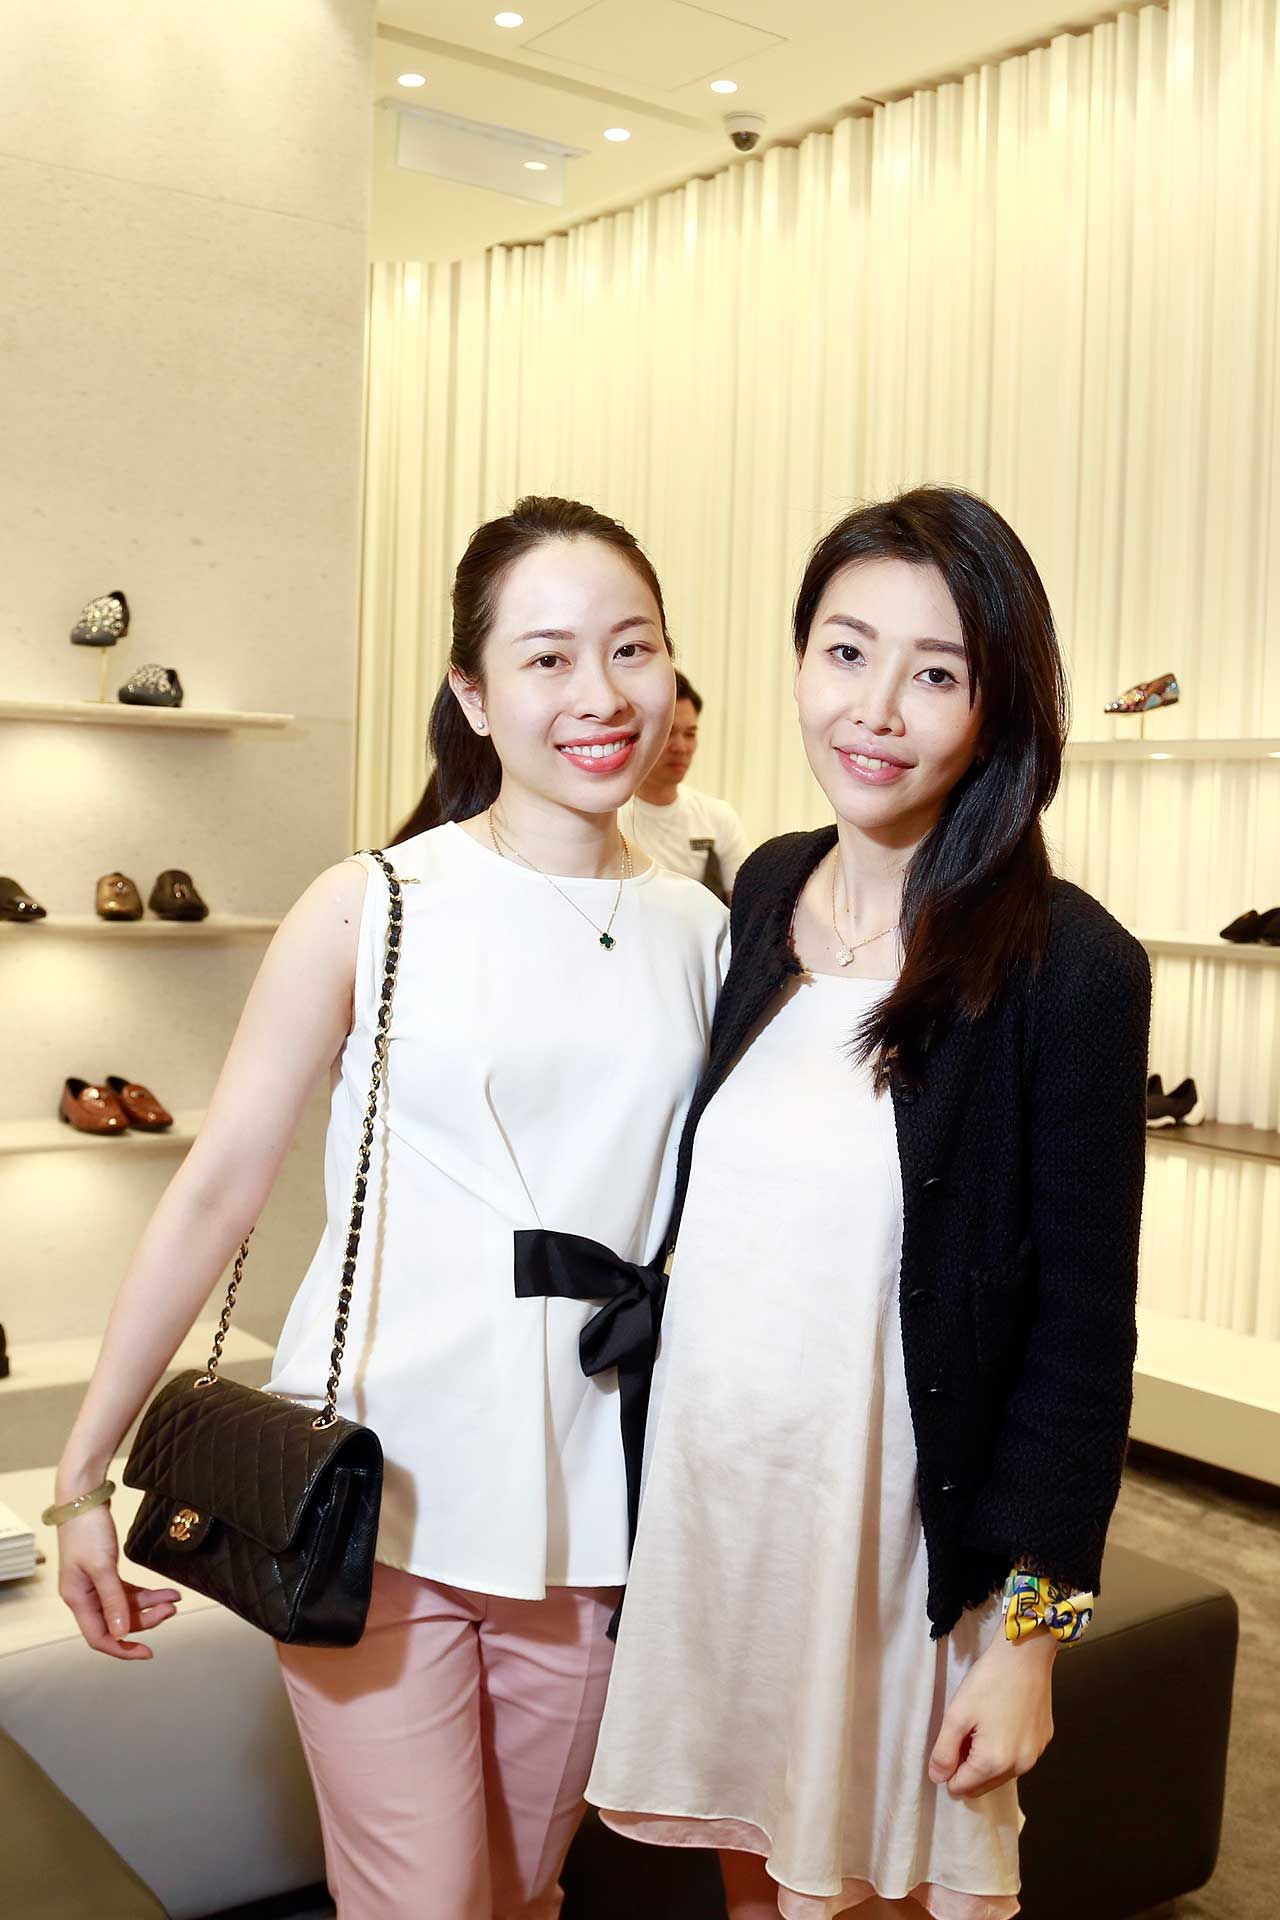 Caleen Chua and Datin Lisa Ong